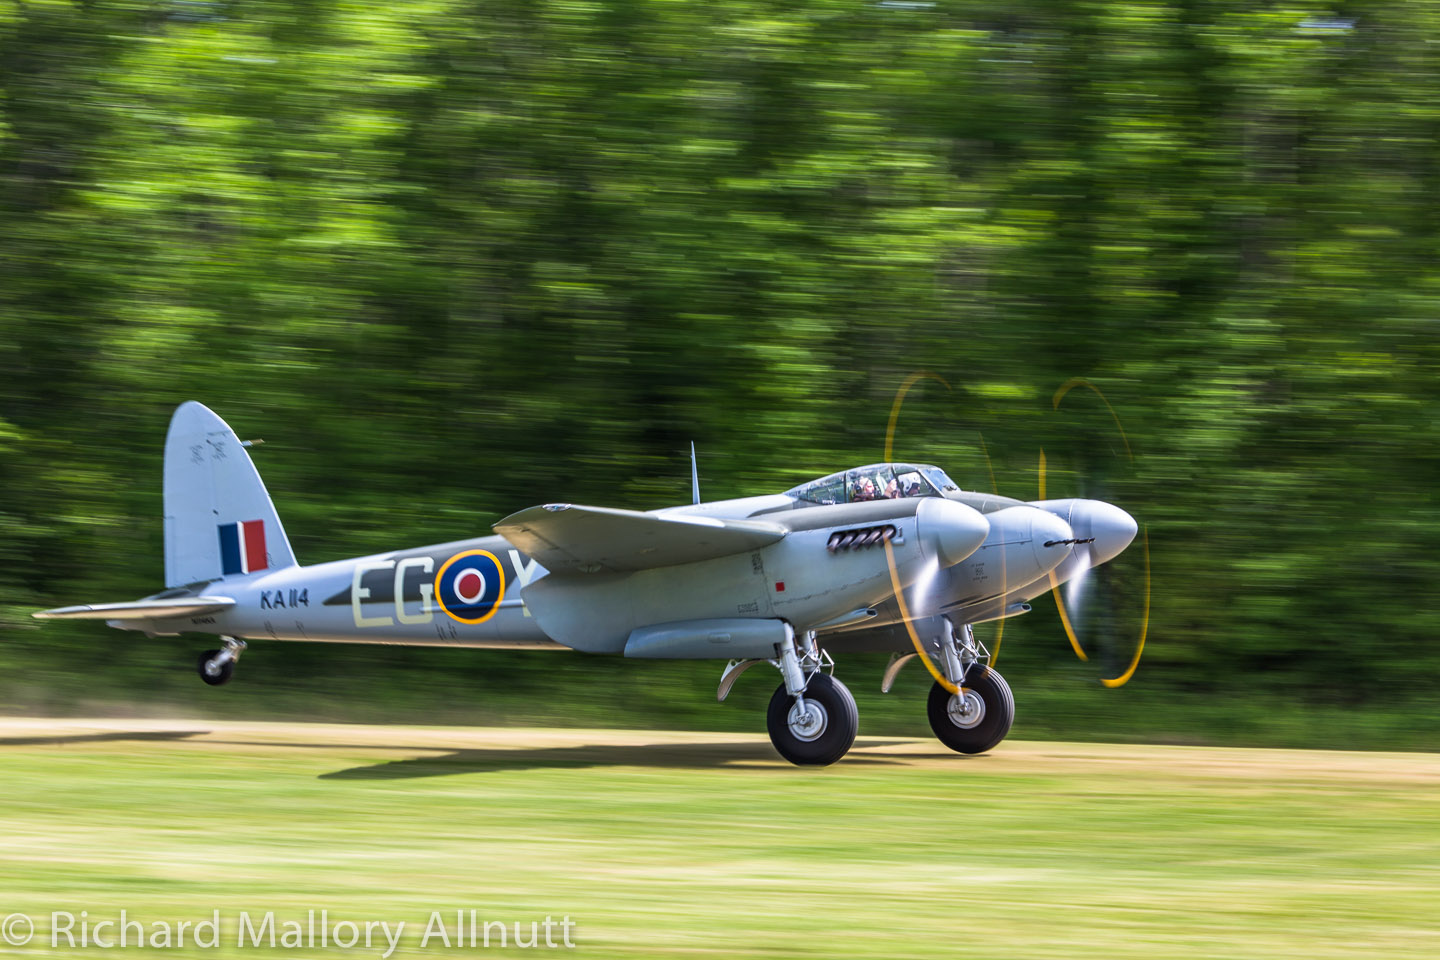 _C8A0396 - Richard Mallory Allnutt photo - Warbirds Over the Beach - Military Aviation Museum - Pungo, VA - May 17, 2014